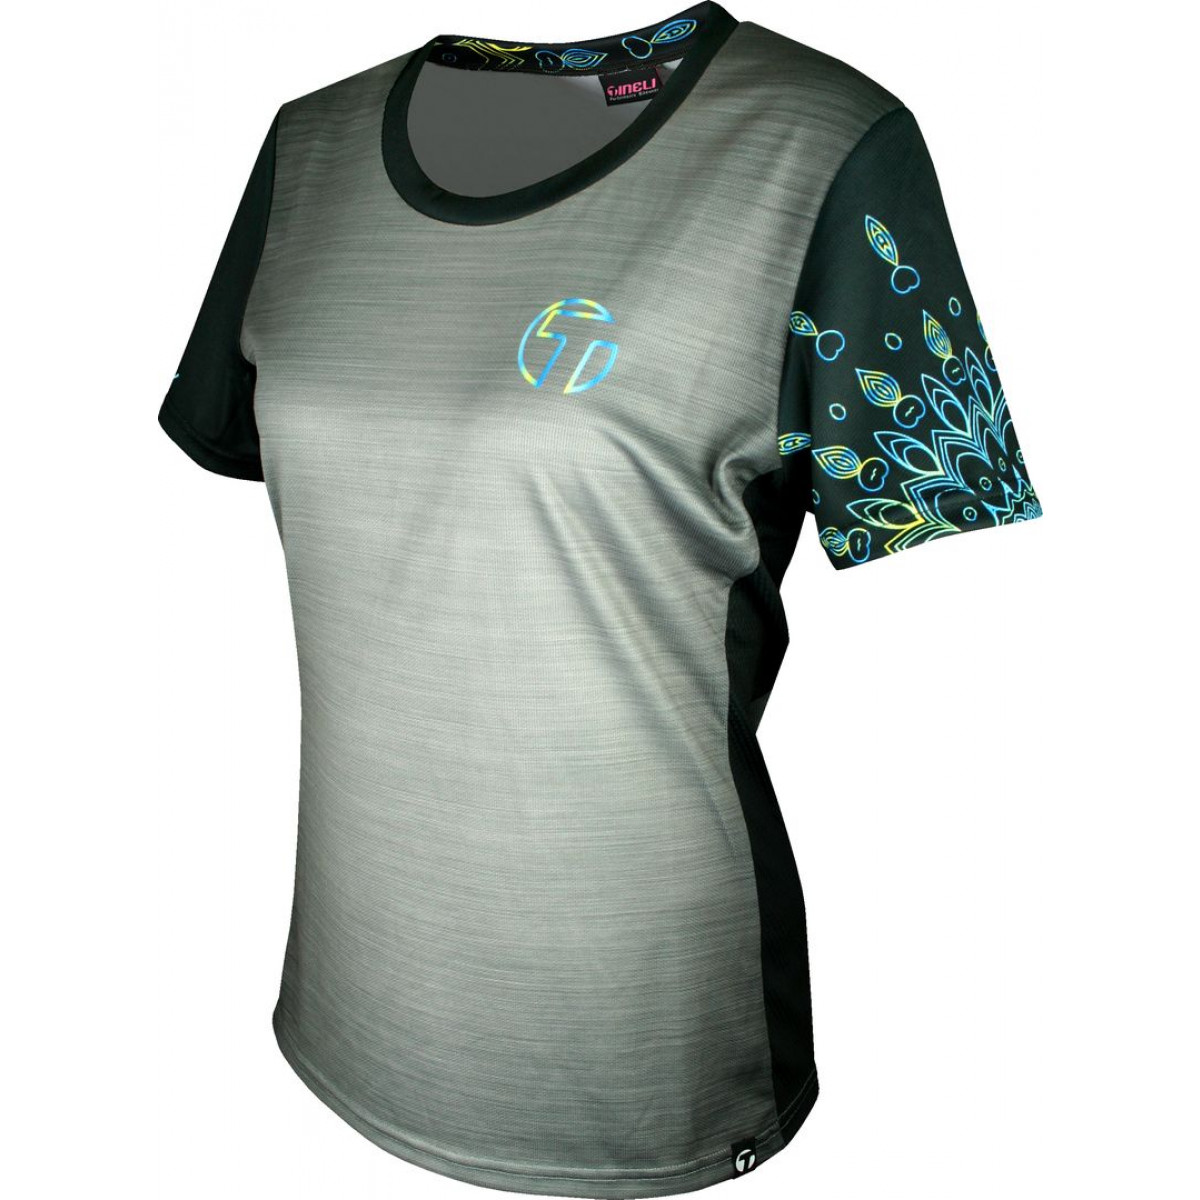 394 mandala trail jersey Women's Short Sleeve Trail Jersey